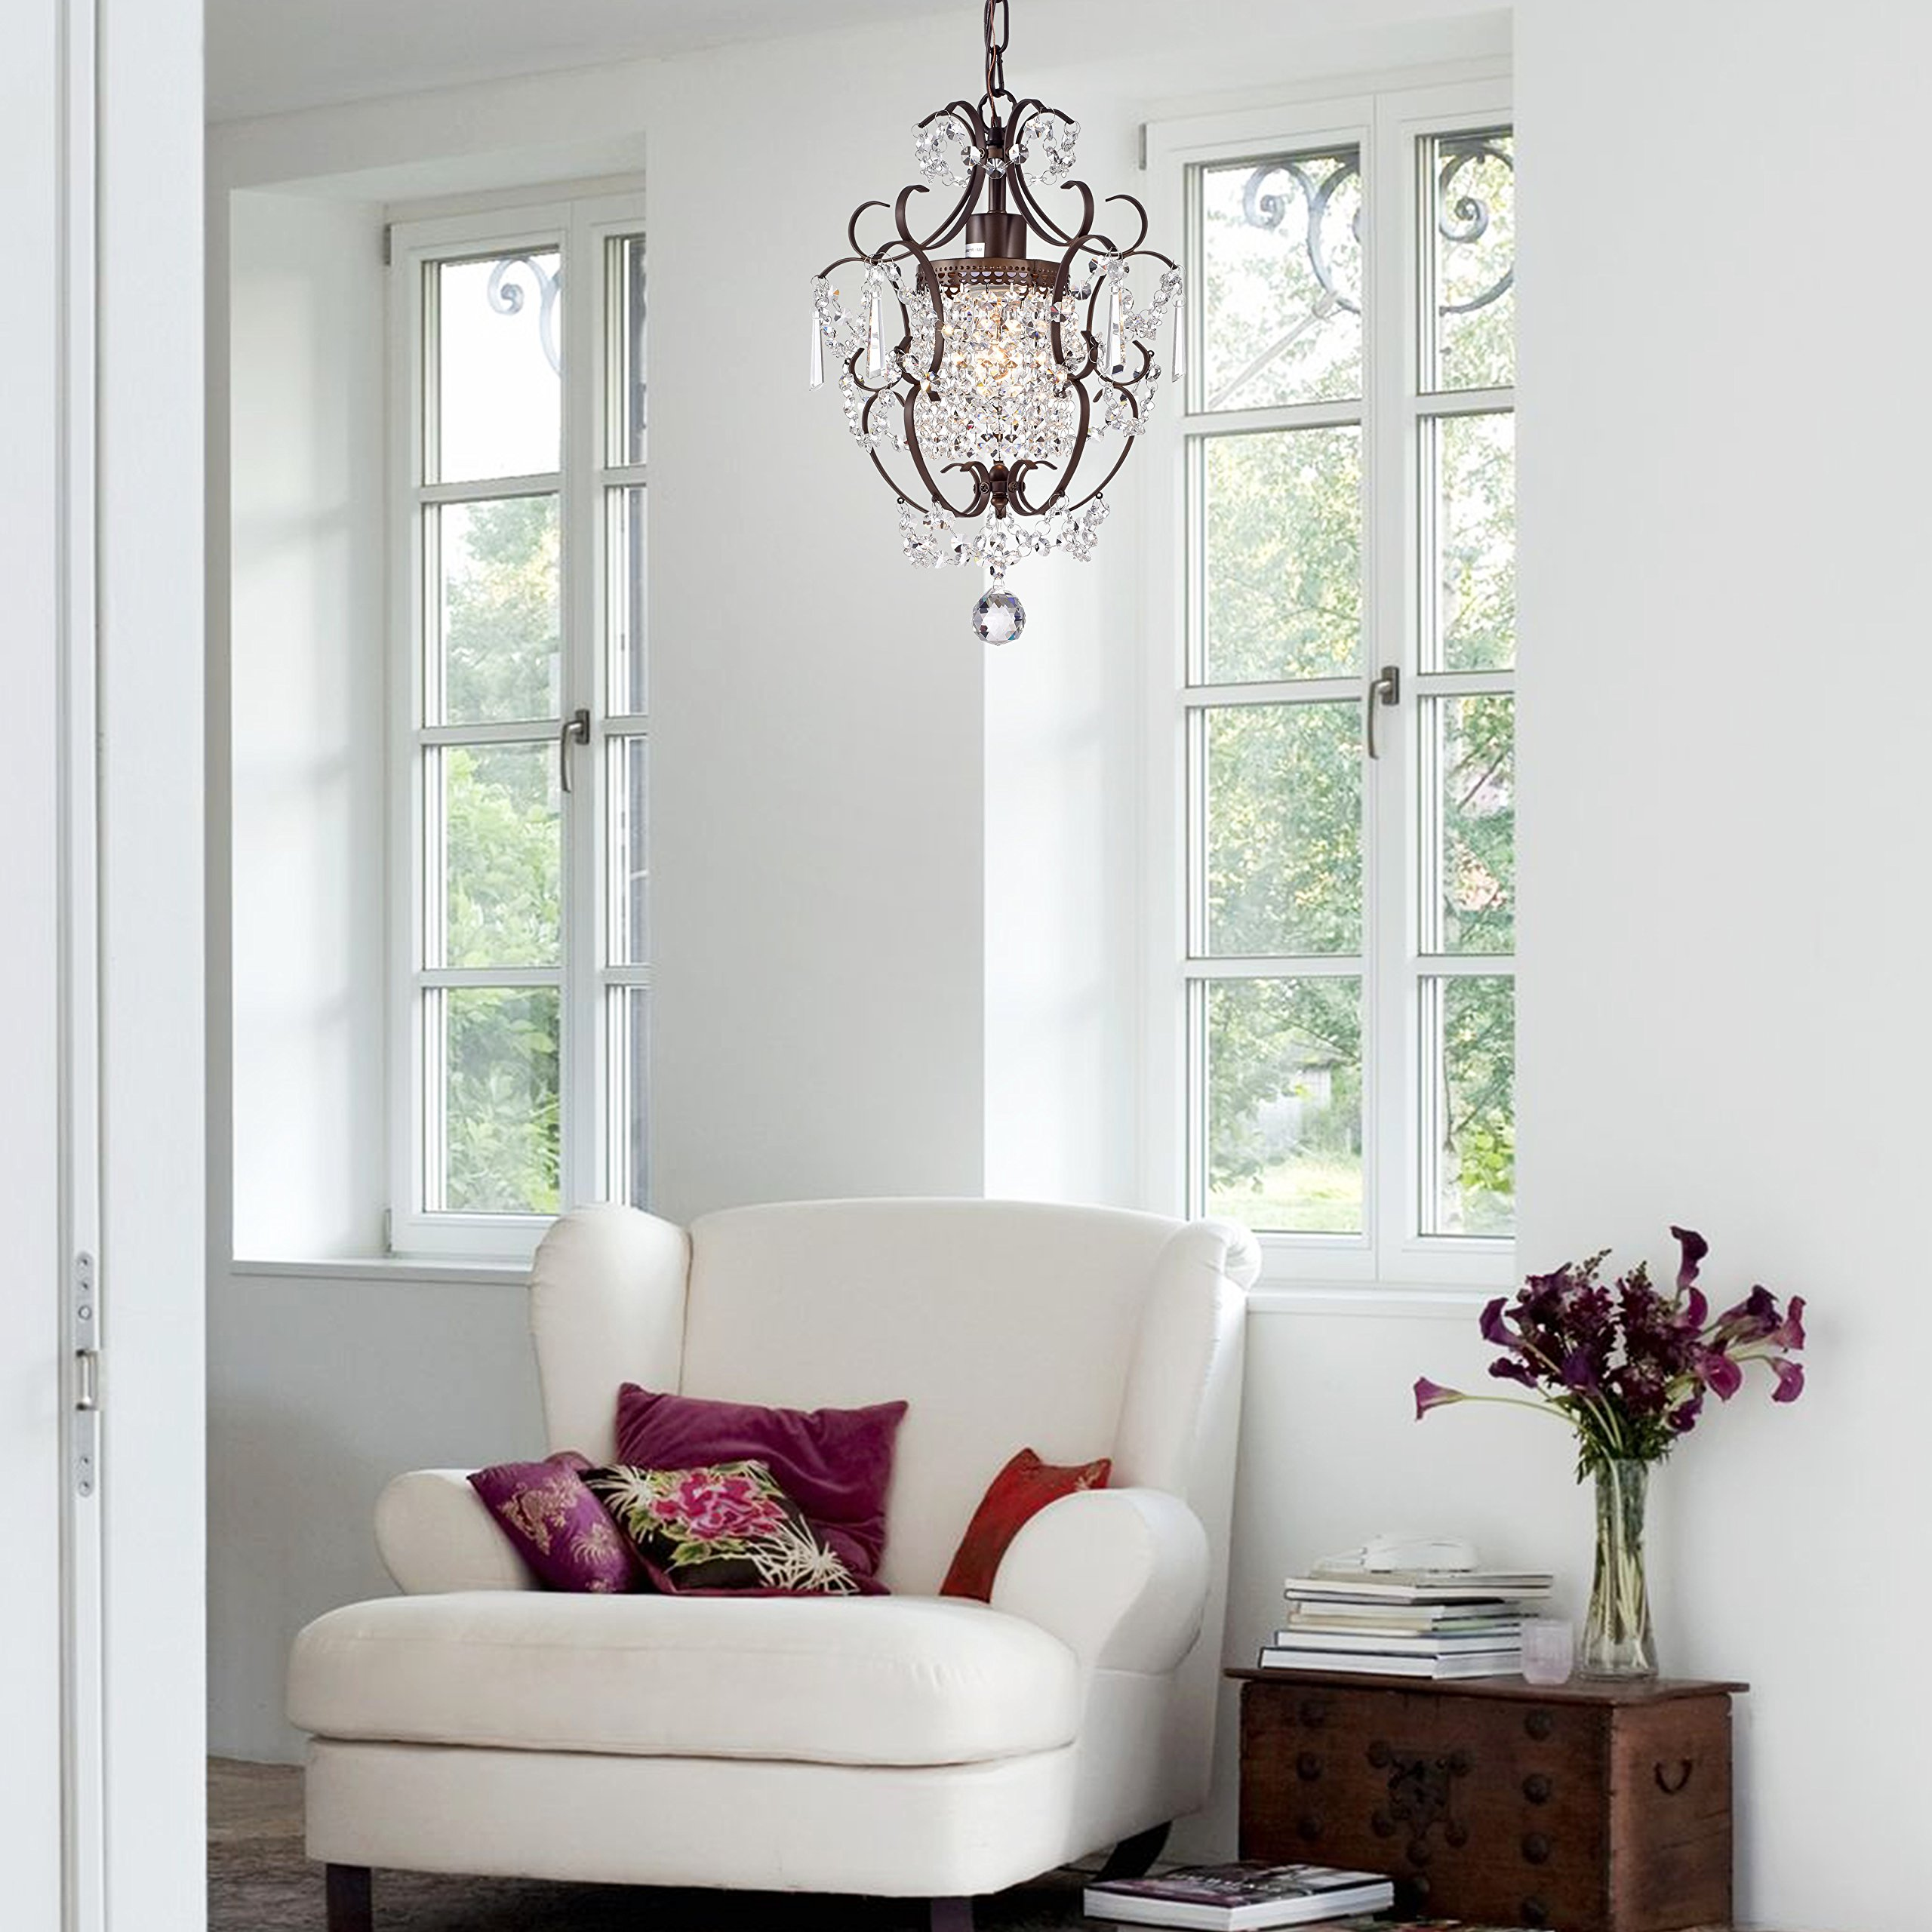 Crystal Chandelier Lighting Bronze Chandeliers 1 Light Iron Ceiling Light Fixture 17011 by LaLuLa (Image #7)